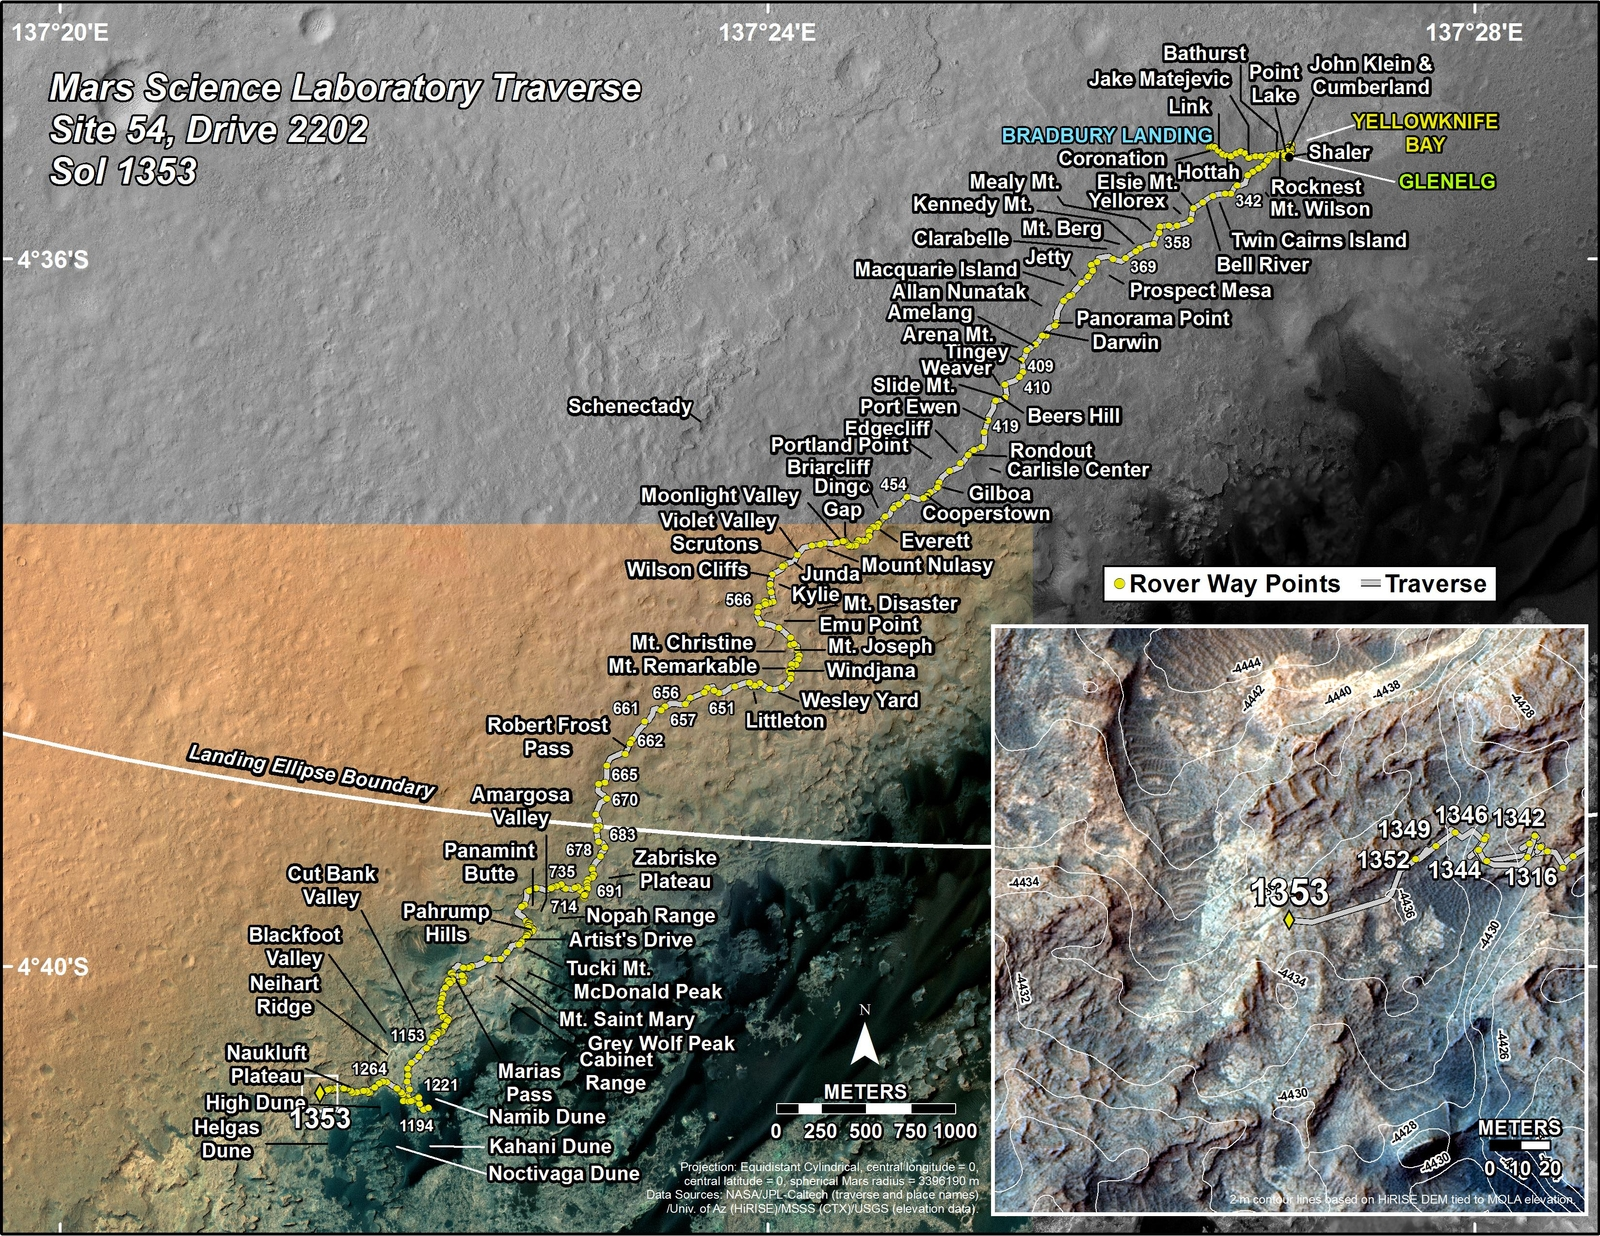 This map shows the route driven by NASA's Mars rover Curiosity through the 1353 Martian day, or sol, of the rover's mission on Mars (May, 27, 2016).